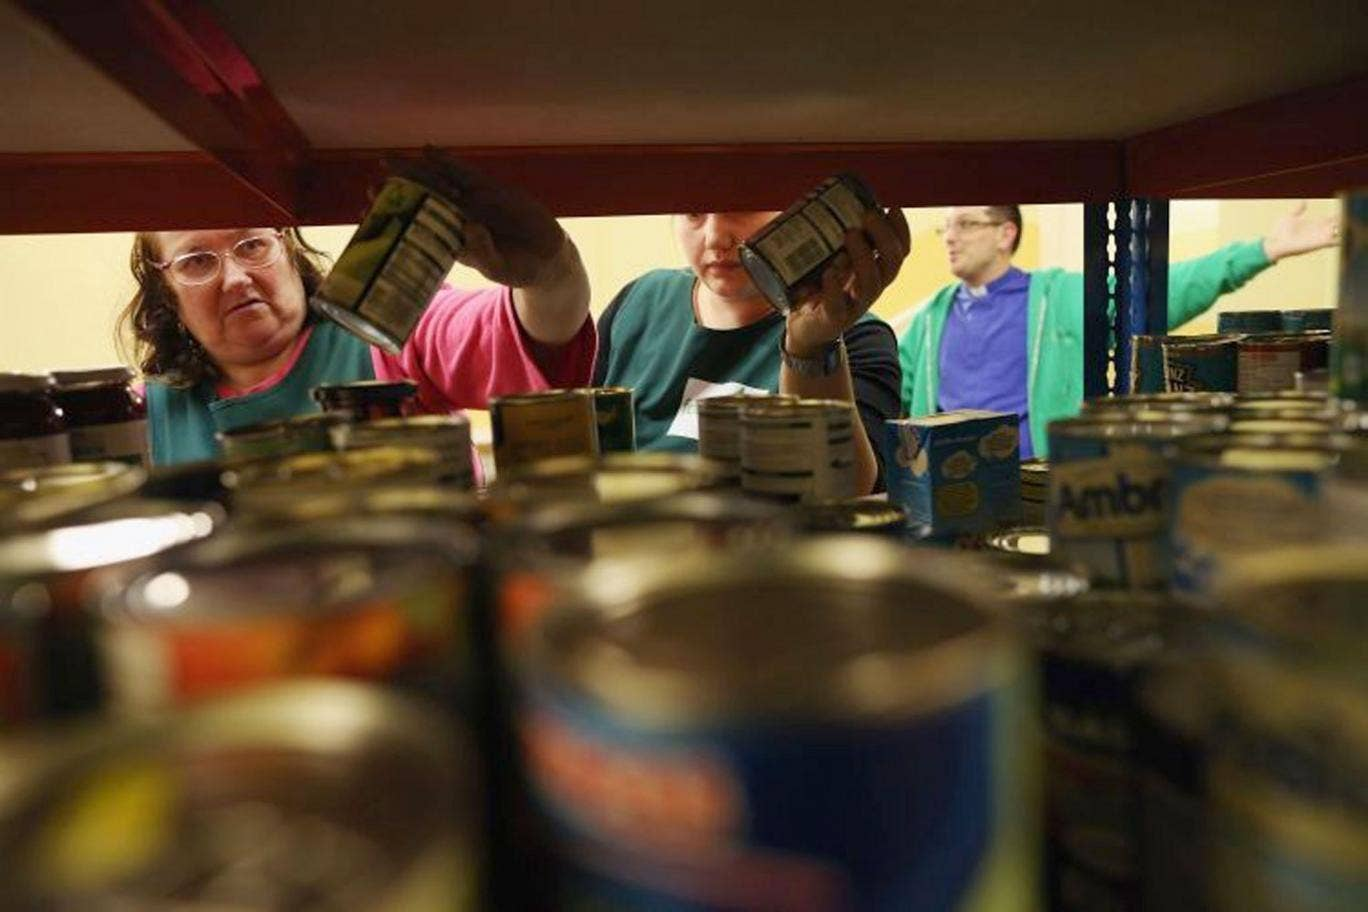 Two out of five food banks are facing cutbacks while three-quarters are predicting greater demand